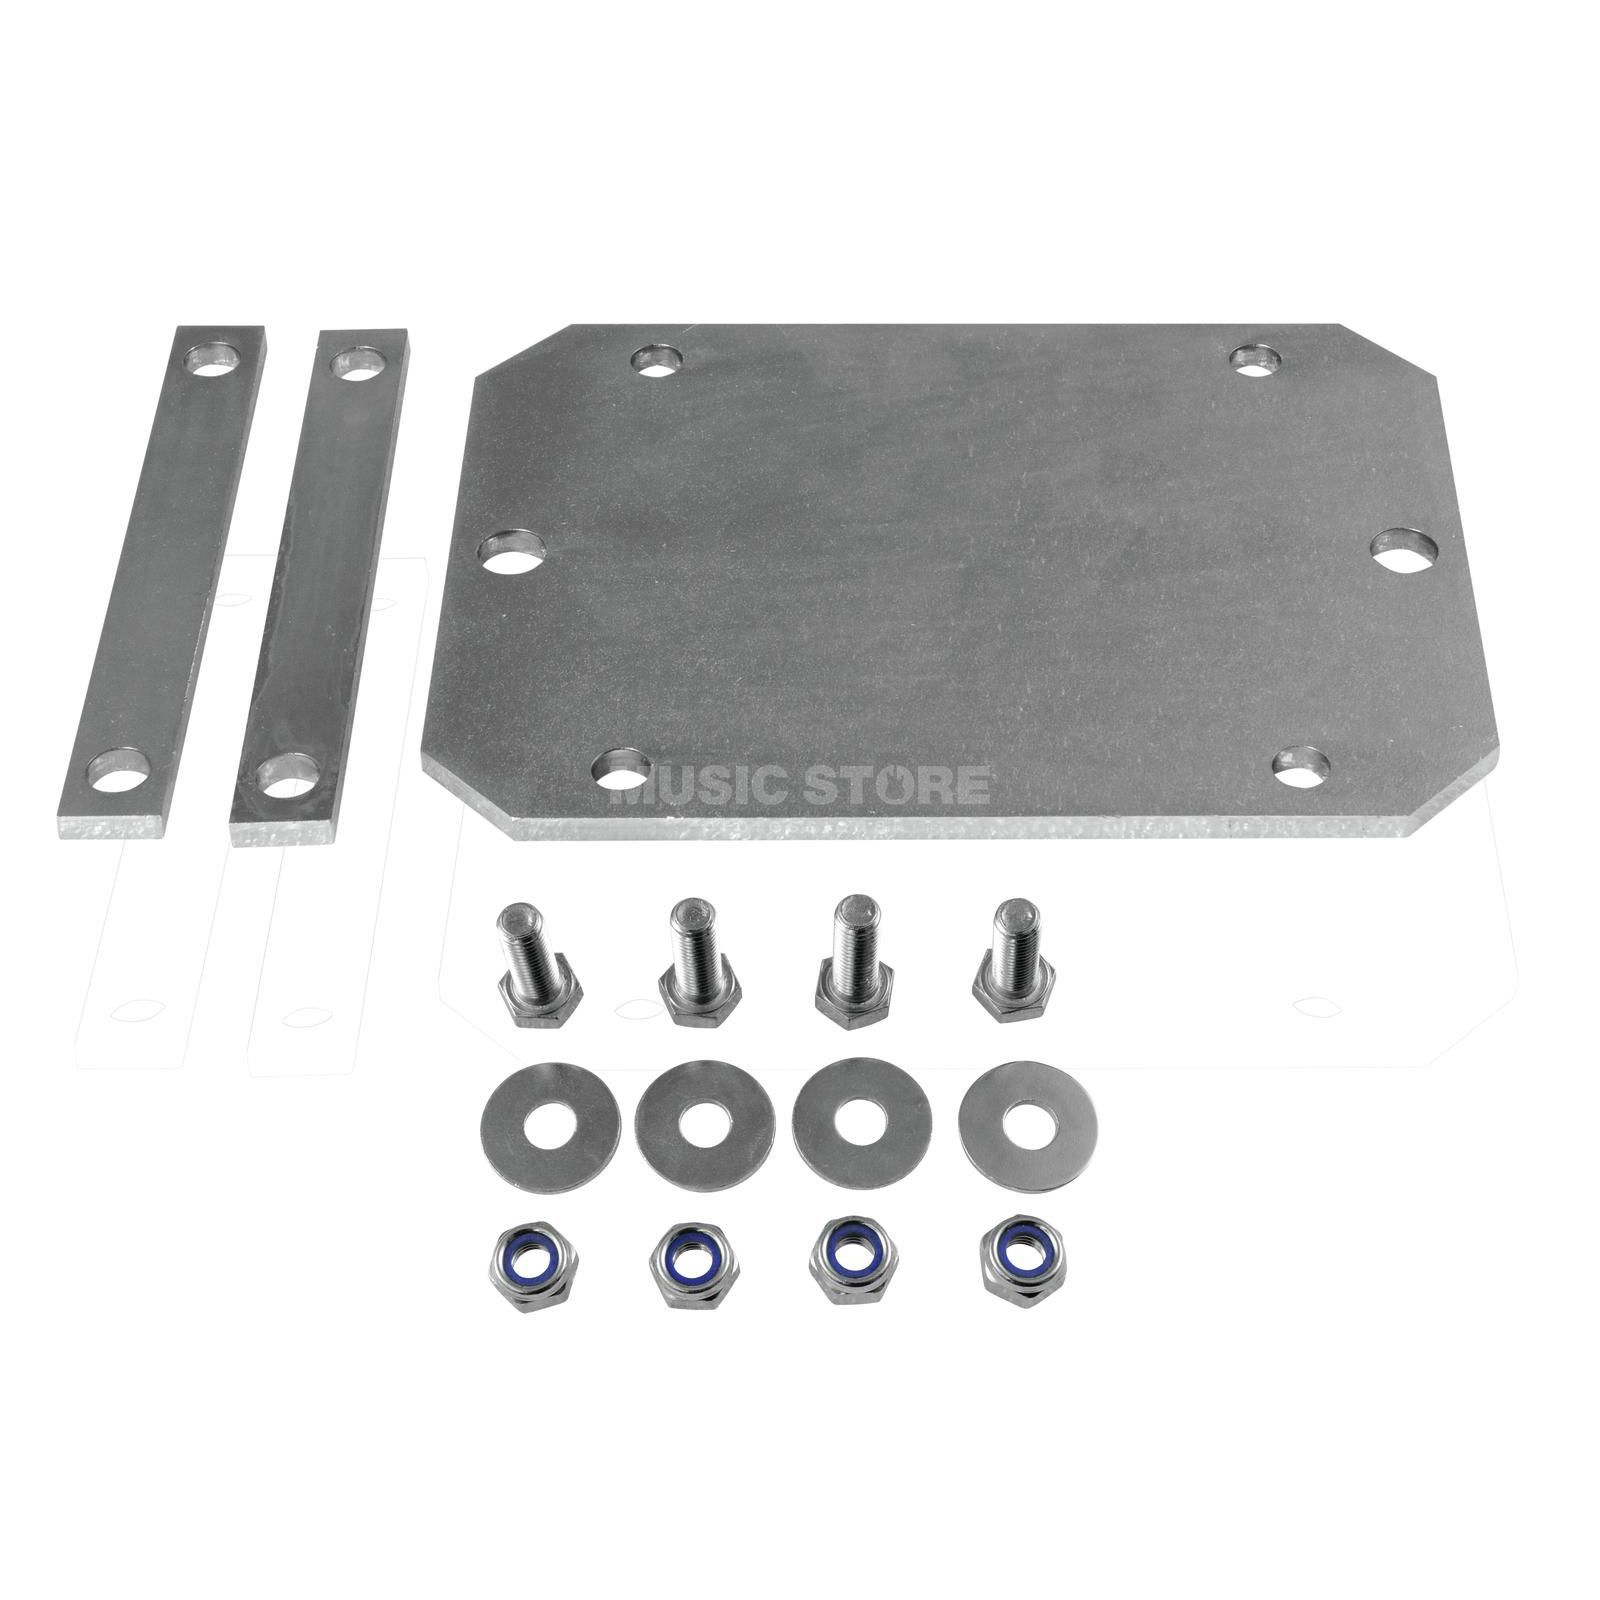 Eurolite Mounting Set for MD-1015 MD-1030/MD-1515 Produktbillede